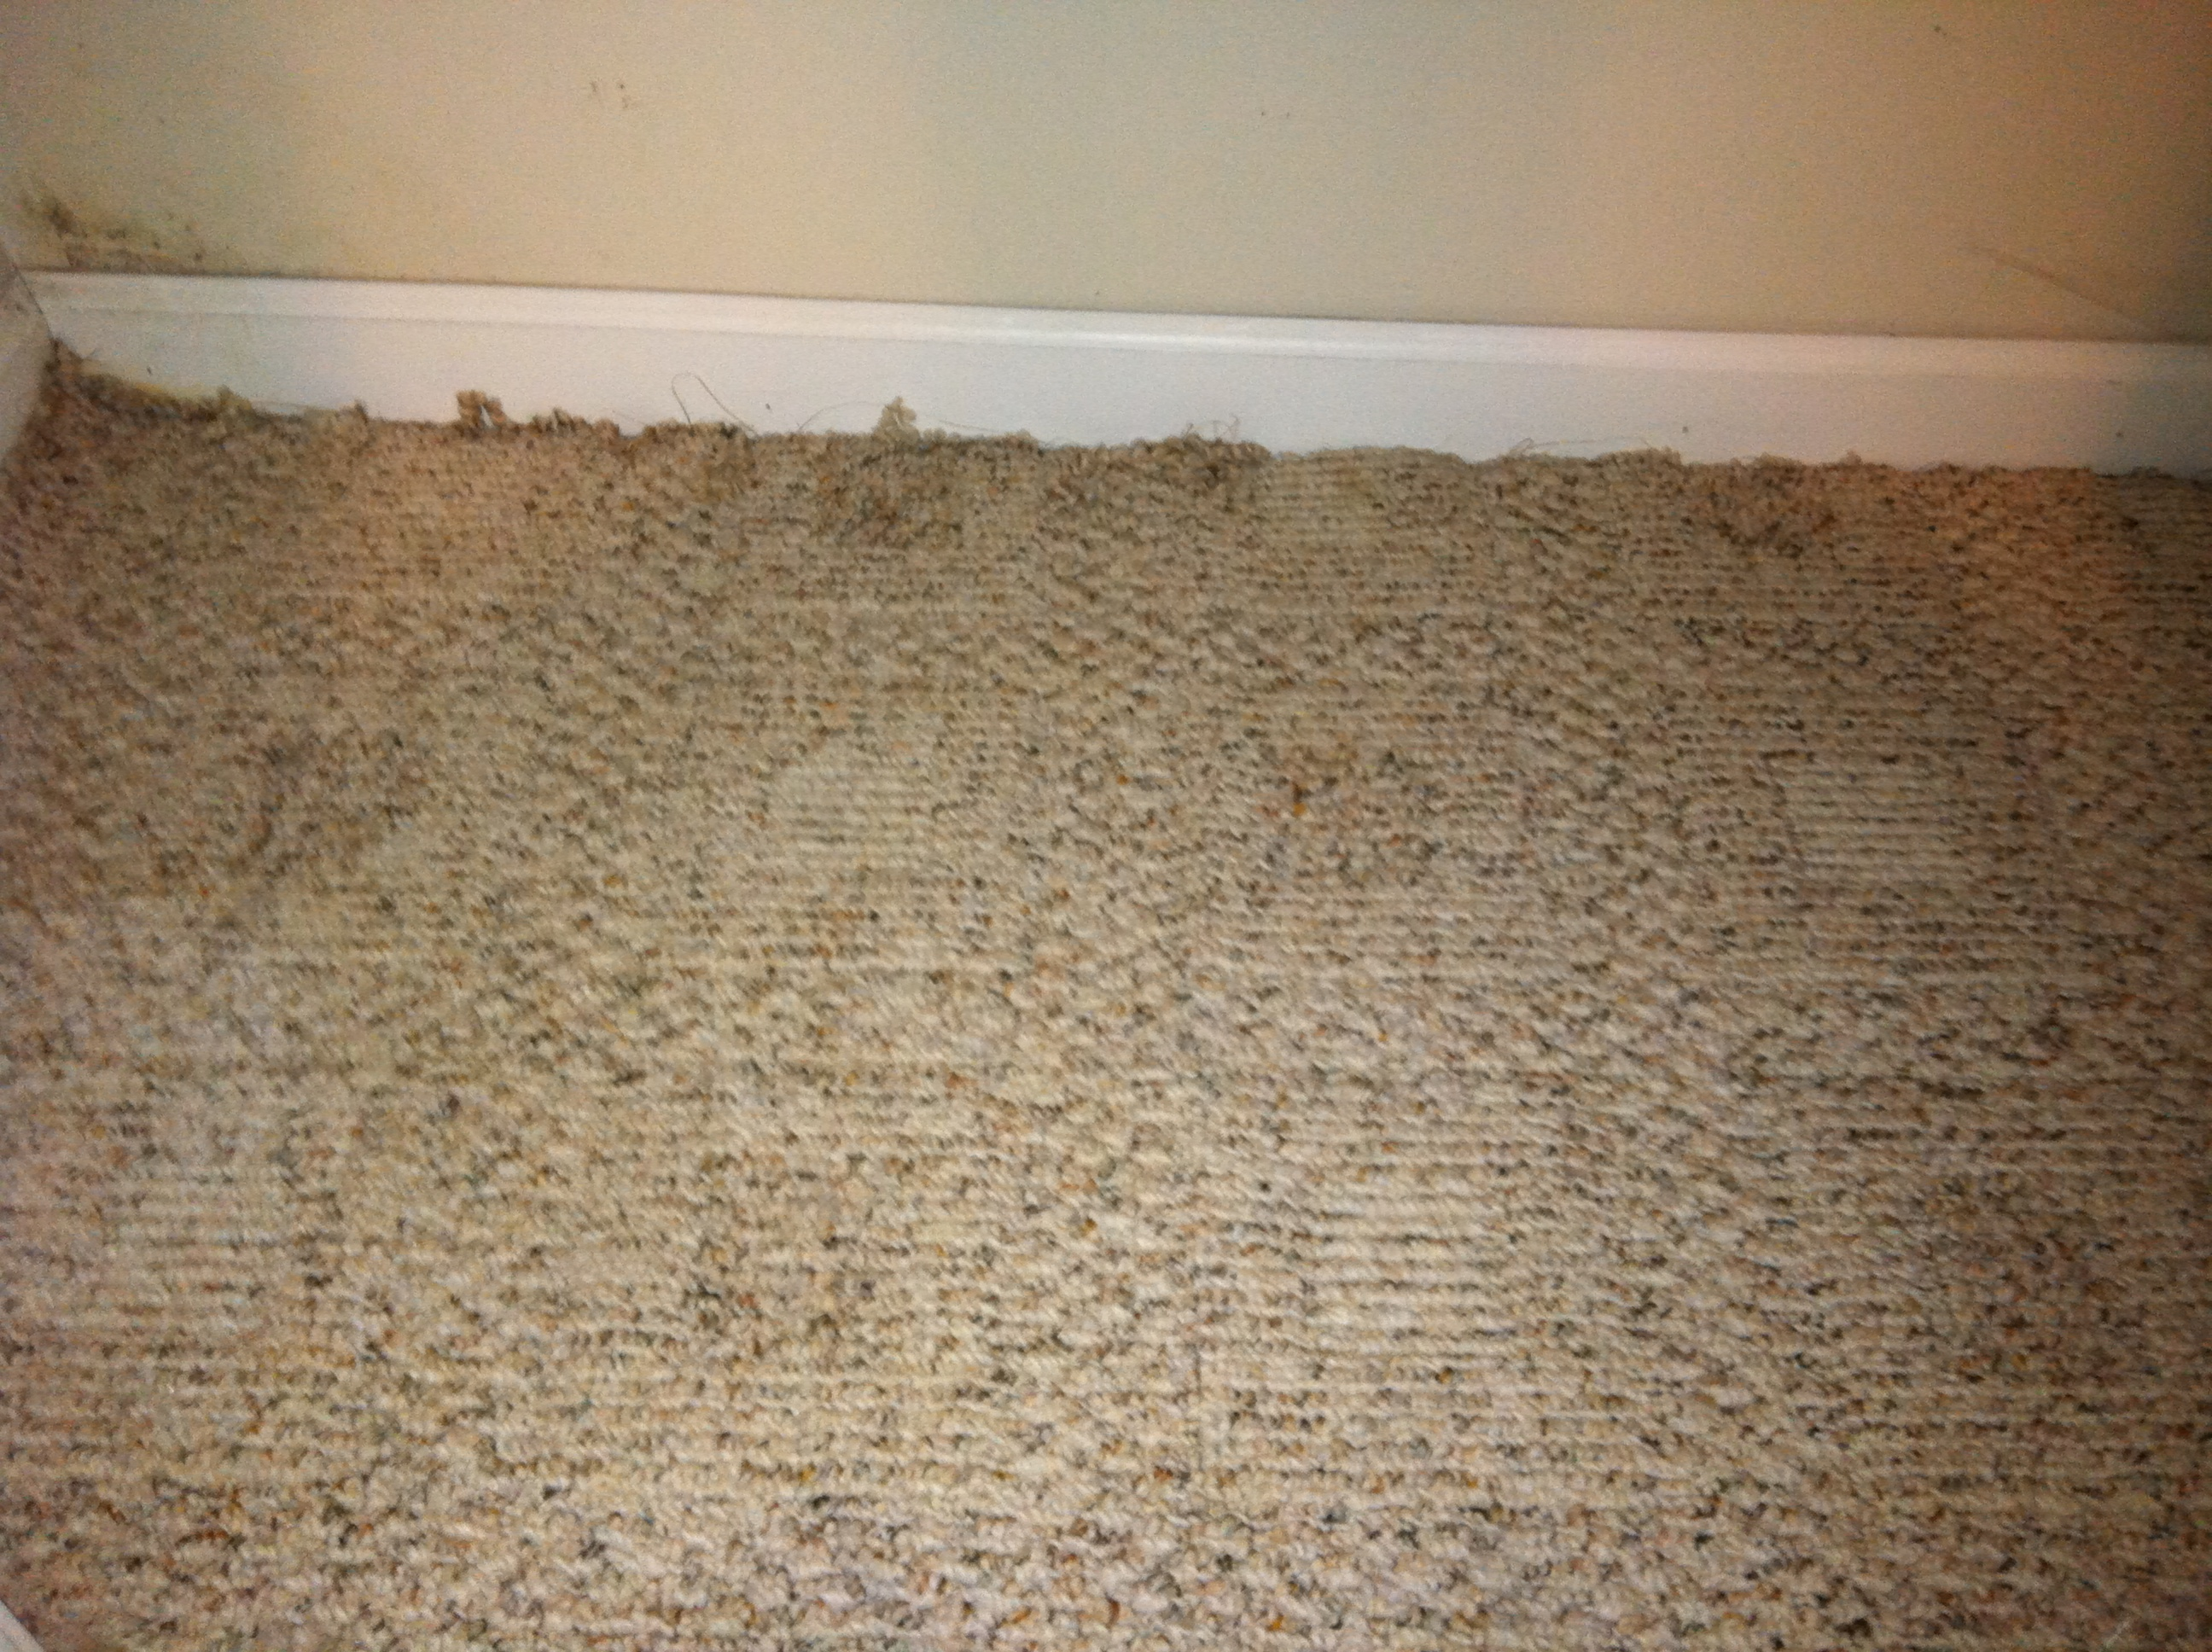 Carmel Water Damage Berber Repair Indianapolis Carpet Repair